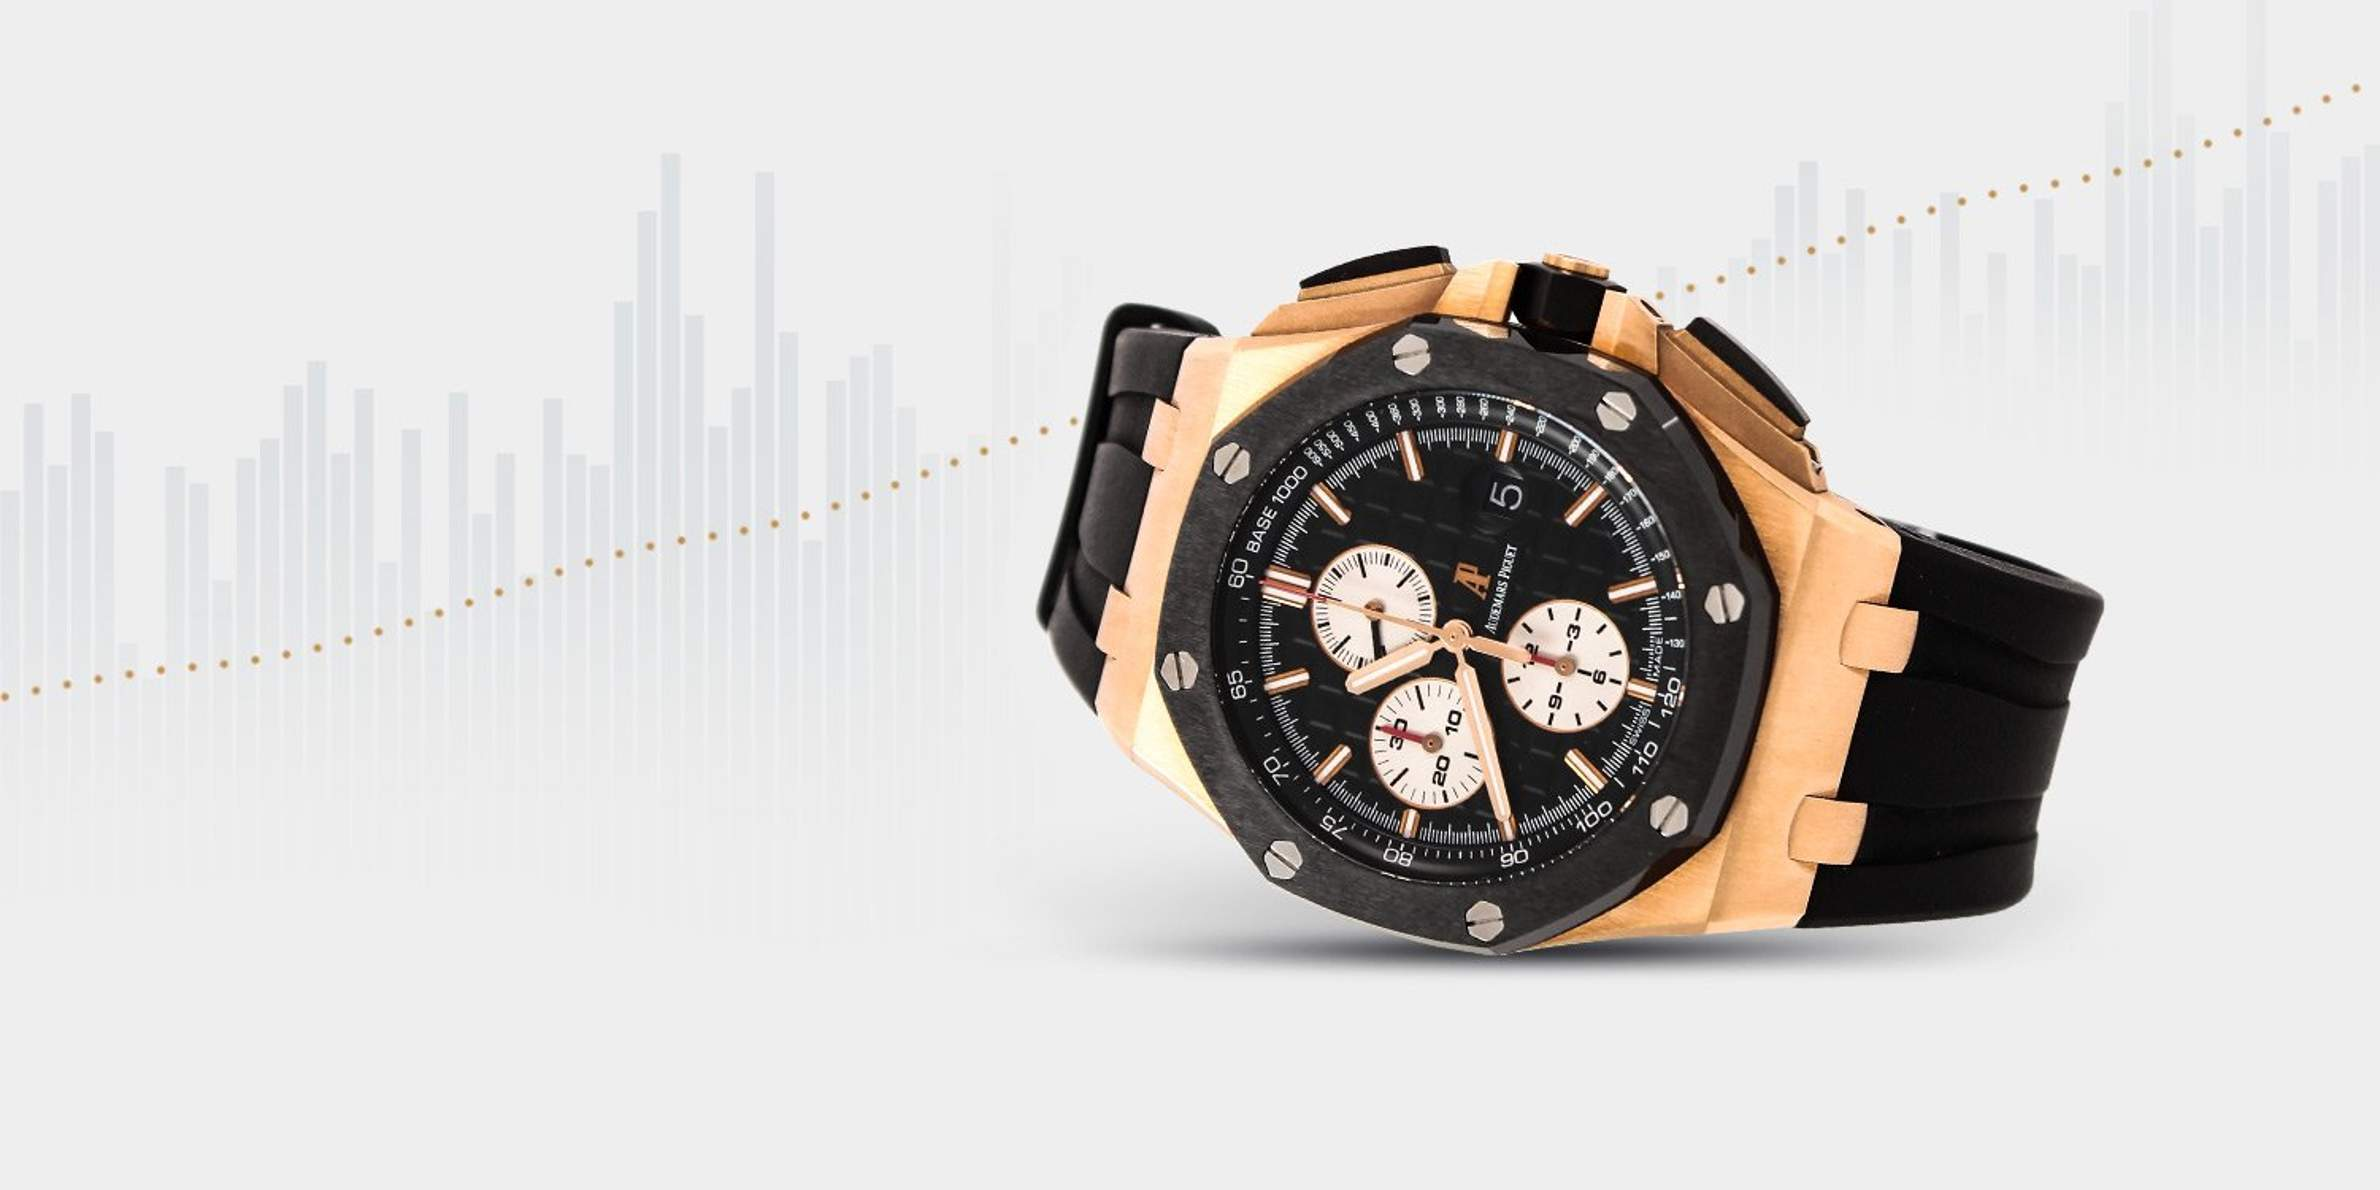 The 5 Most Expensive Watches Ever Sold on Chrono24